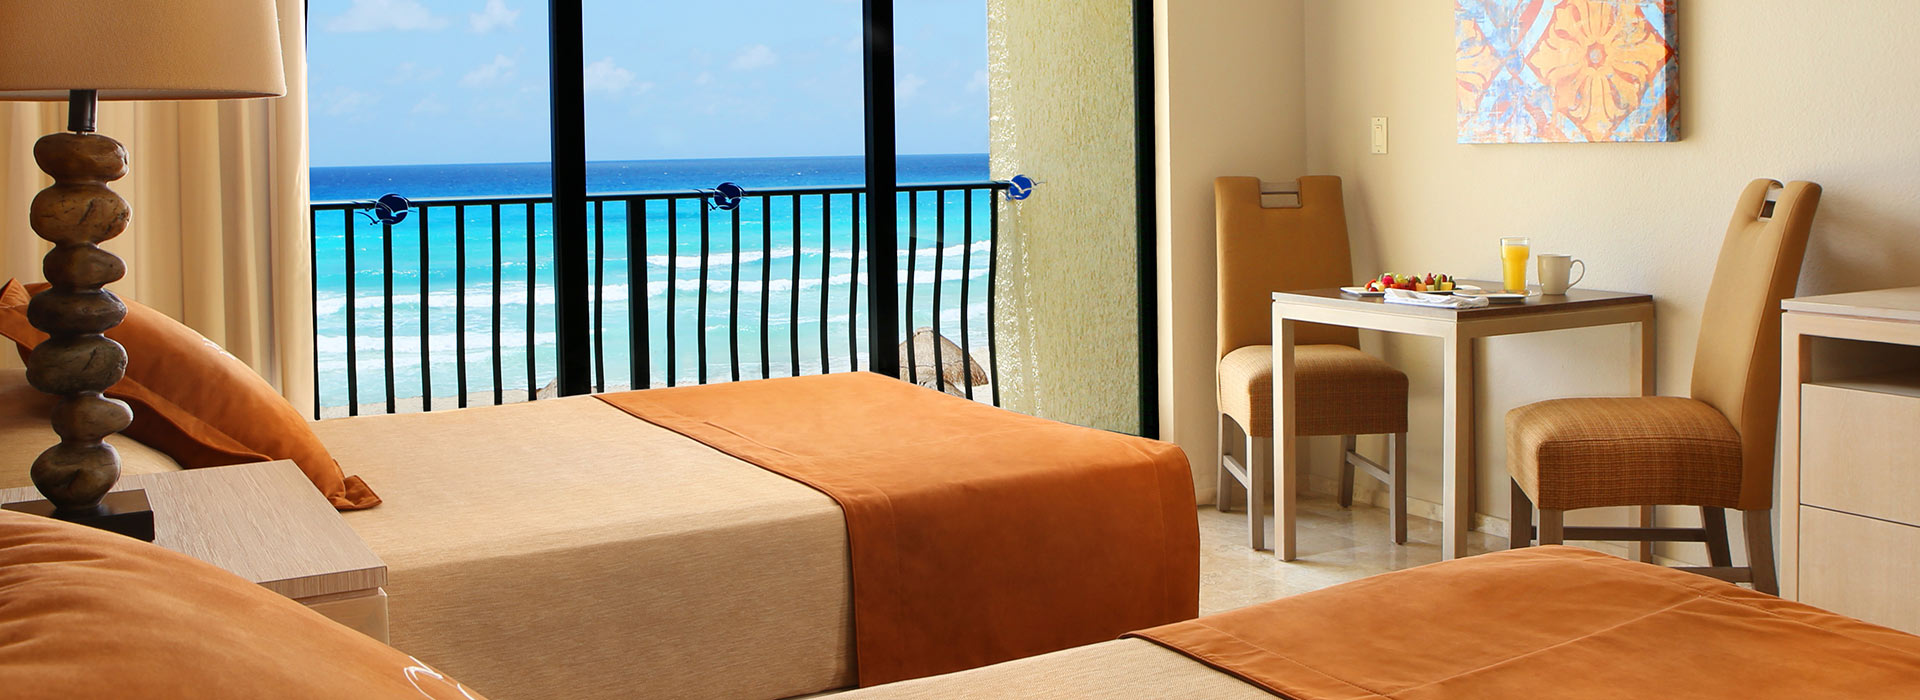 Ocean View Junior suite with ample seating area by the Mexican Caribbean Sea